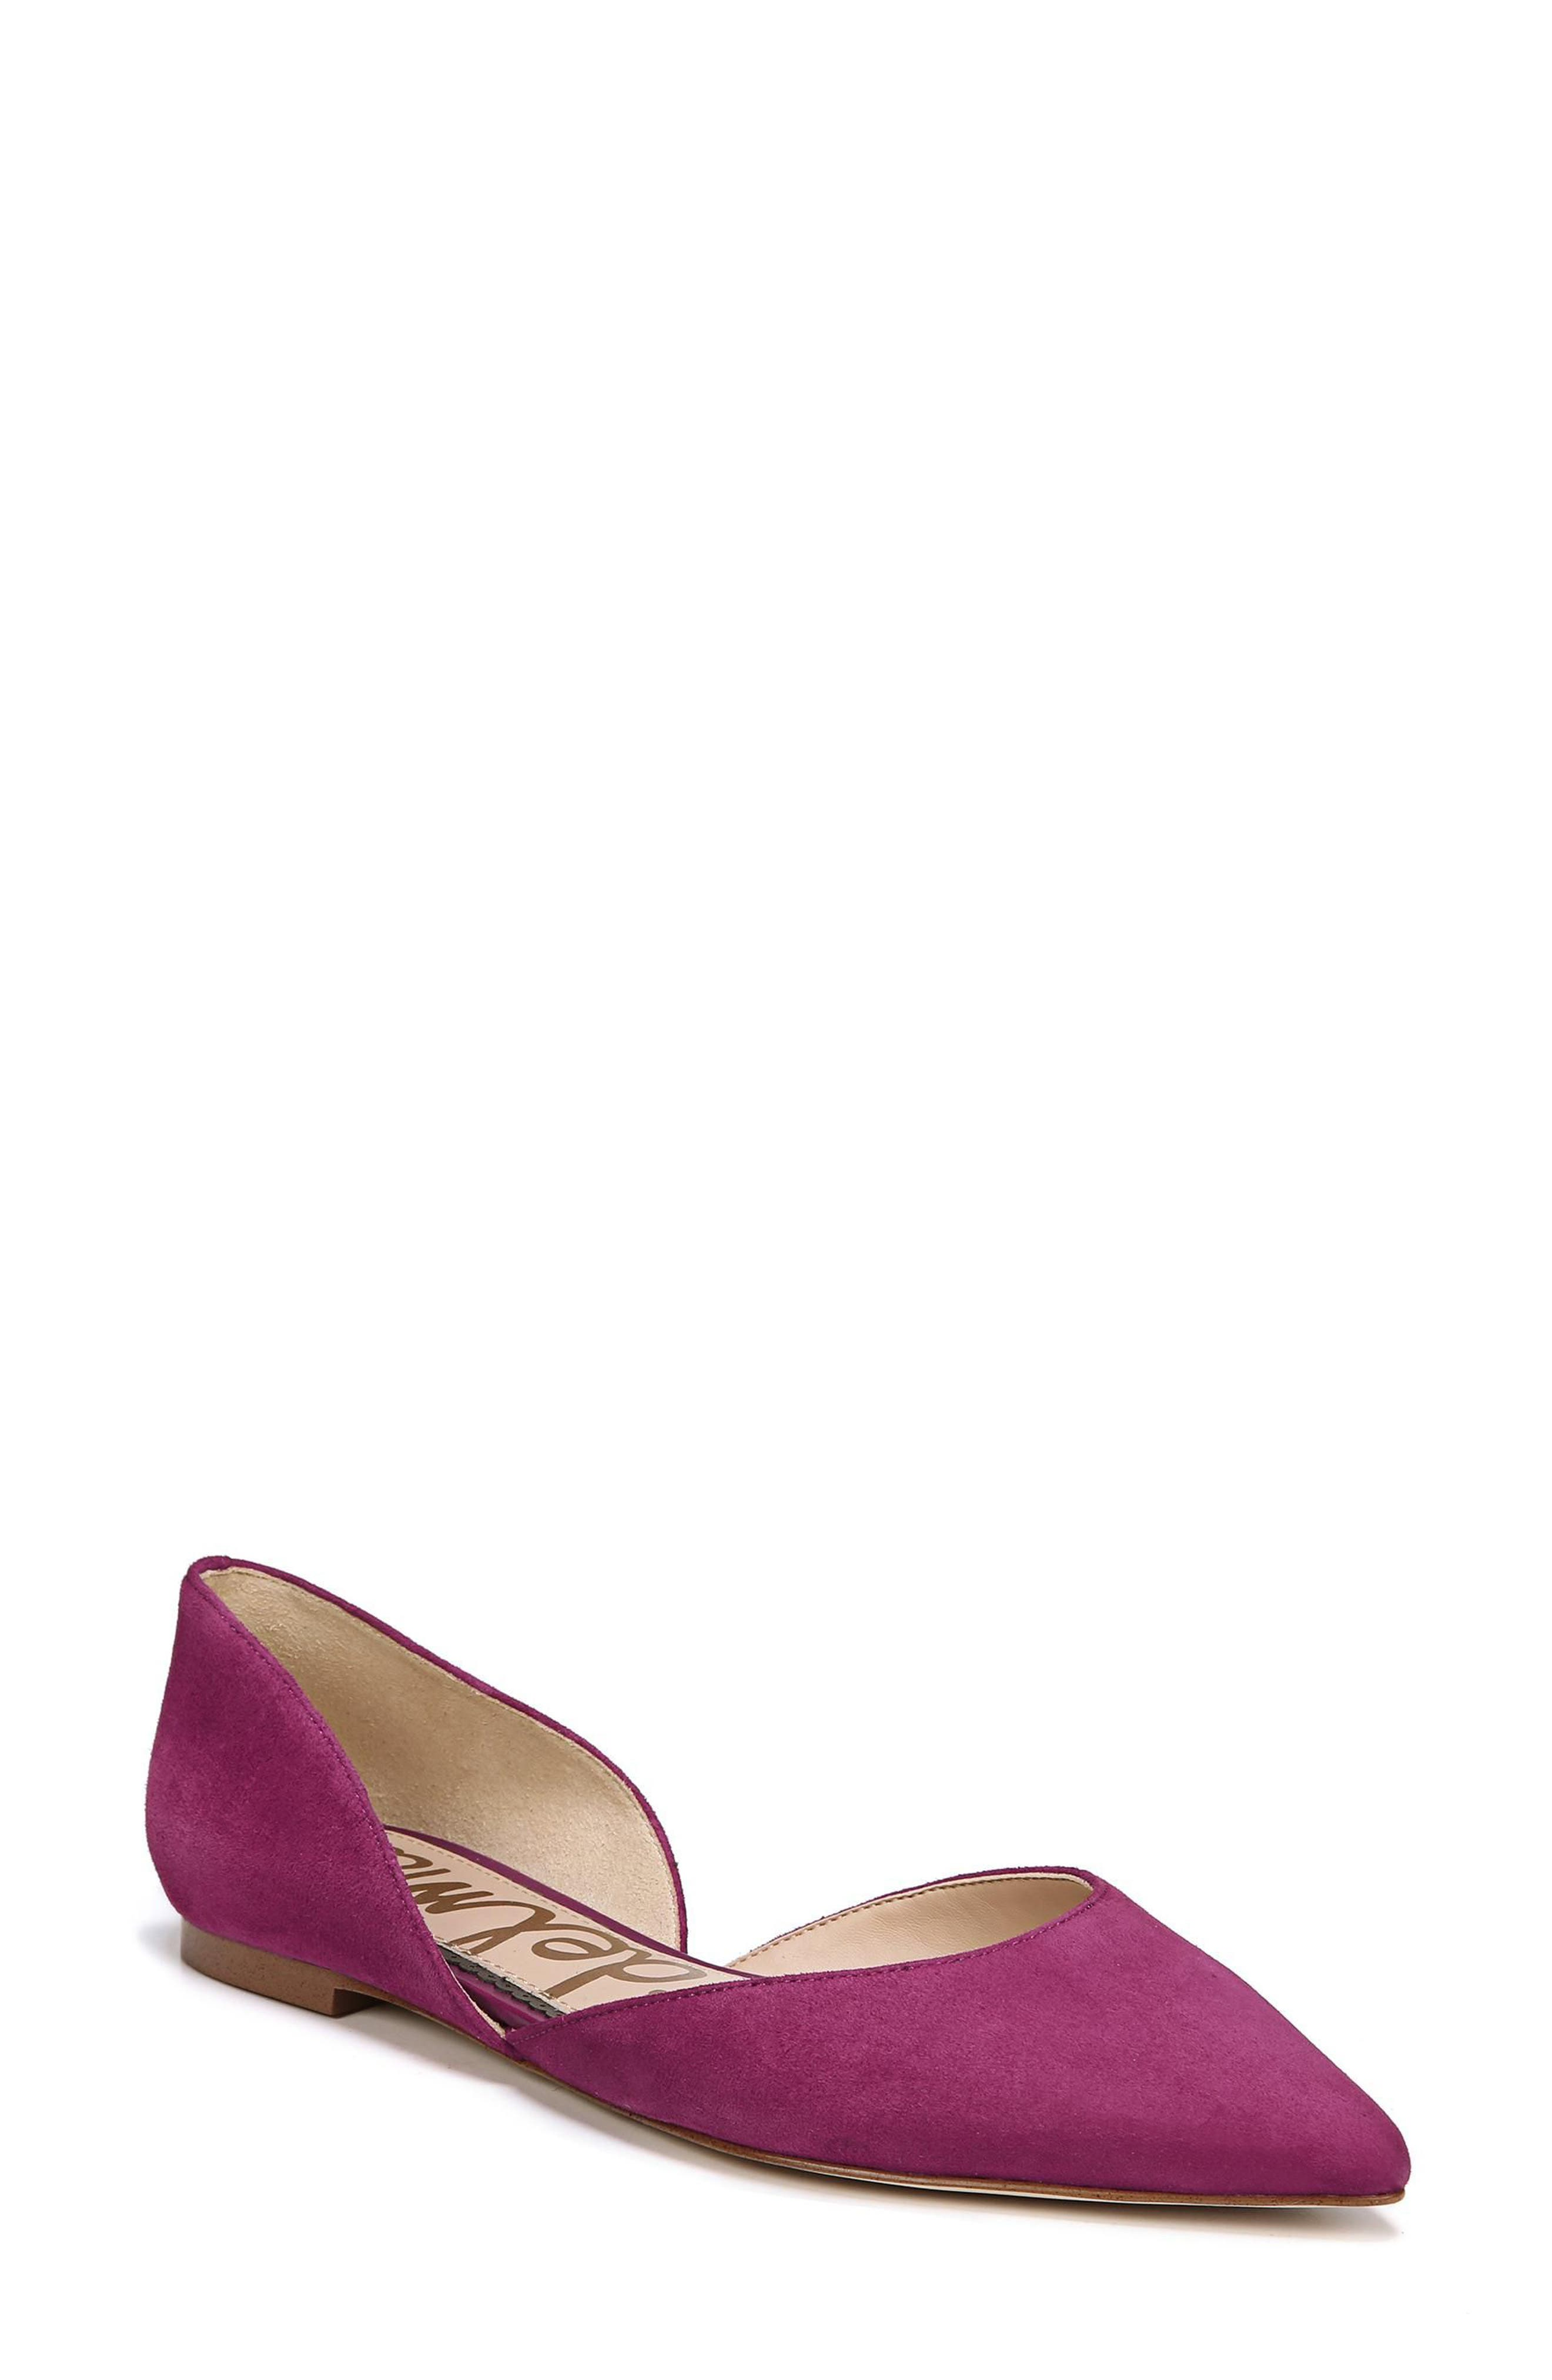 Rodney Pointy Toe d'Orsay Flat,                         Main,                         color, PURPLE PLUM SUEDE